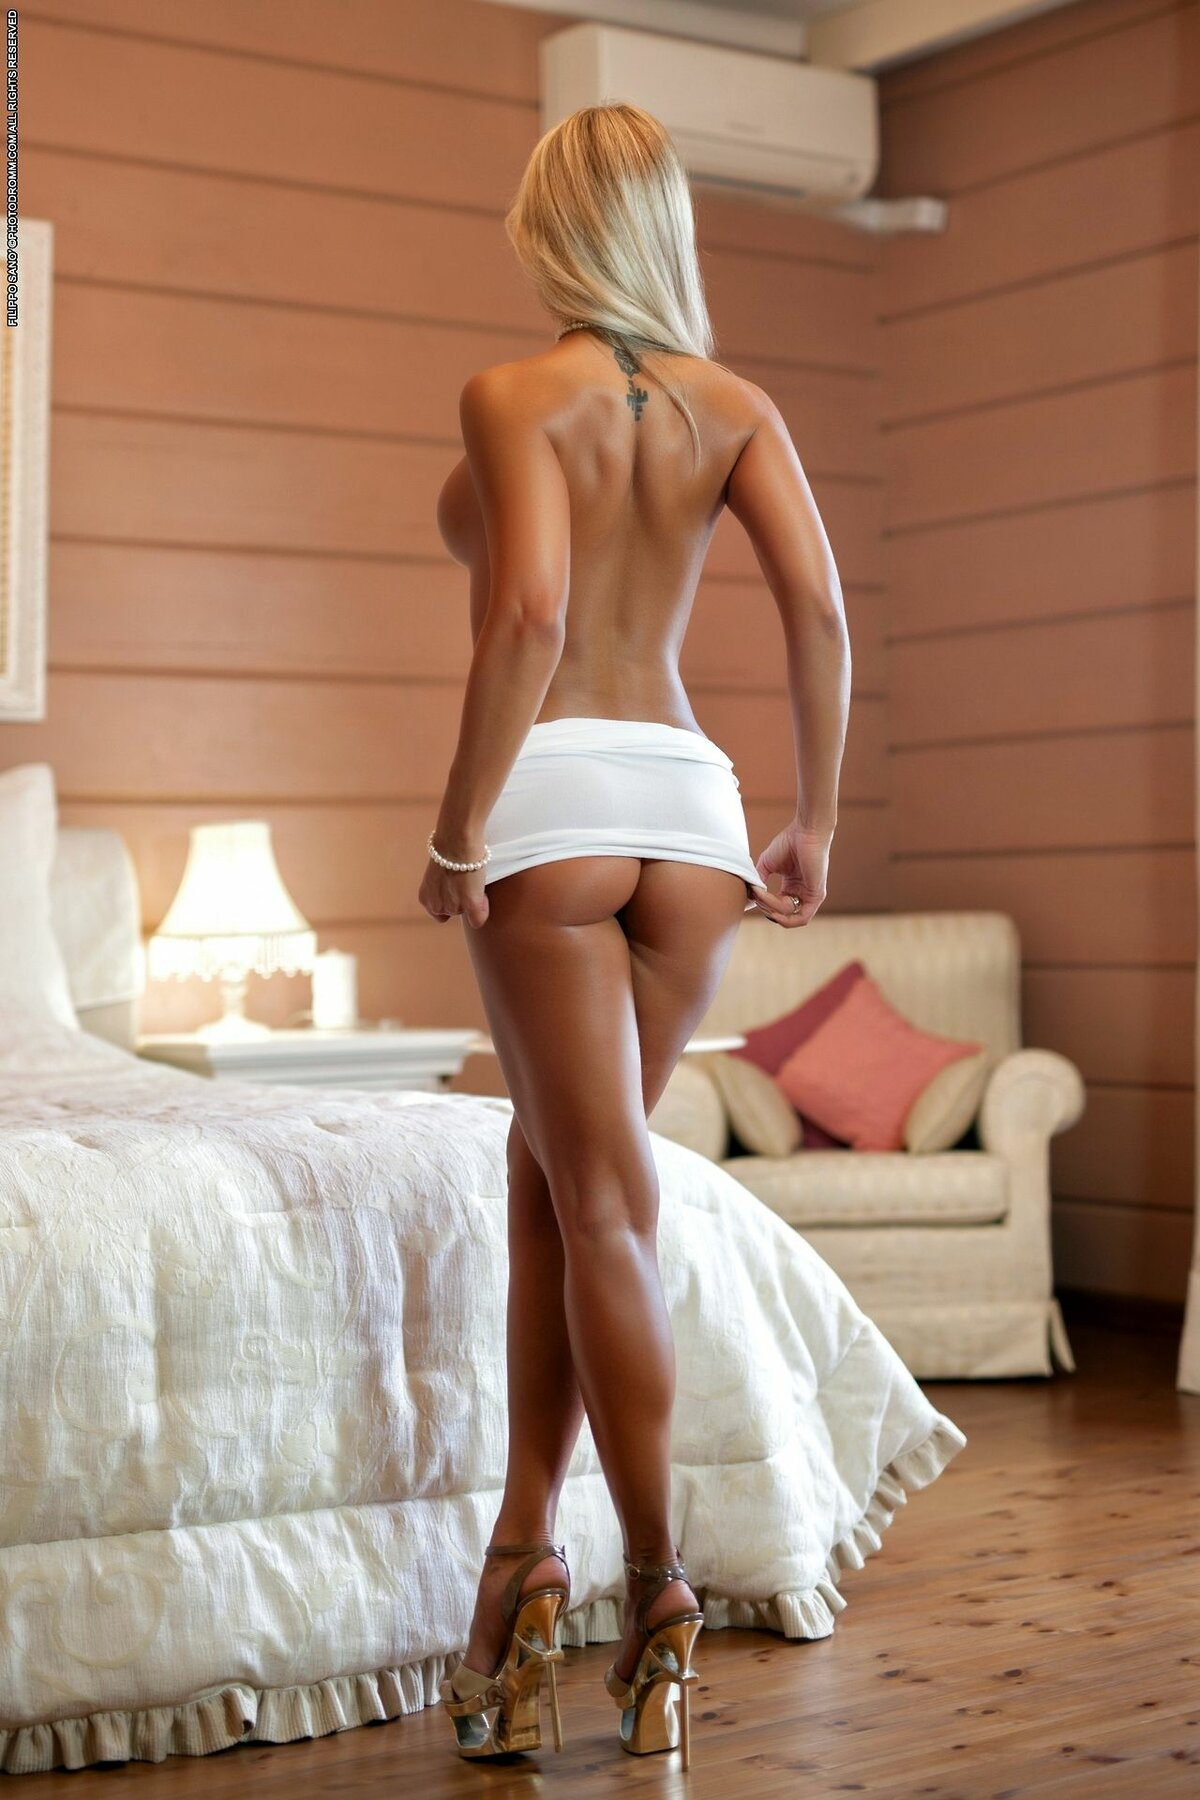 long-legs-and-sexy-ass-babes-clit-needles-bdsmtures